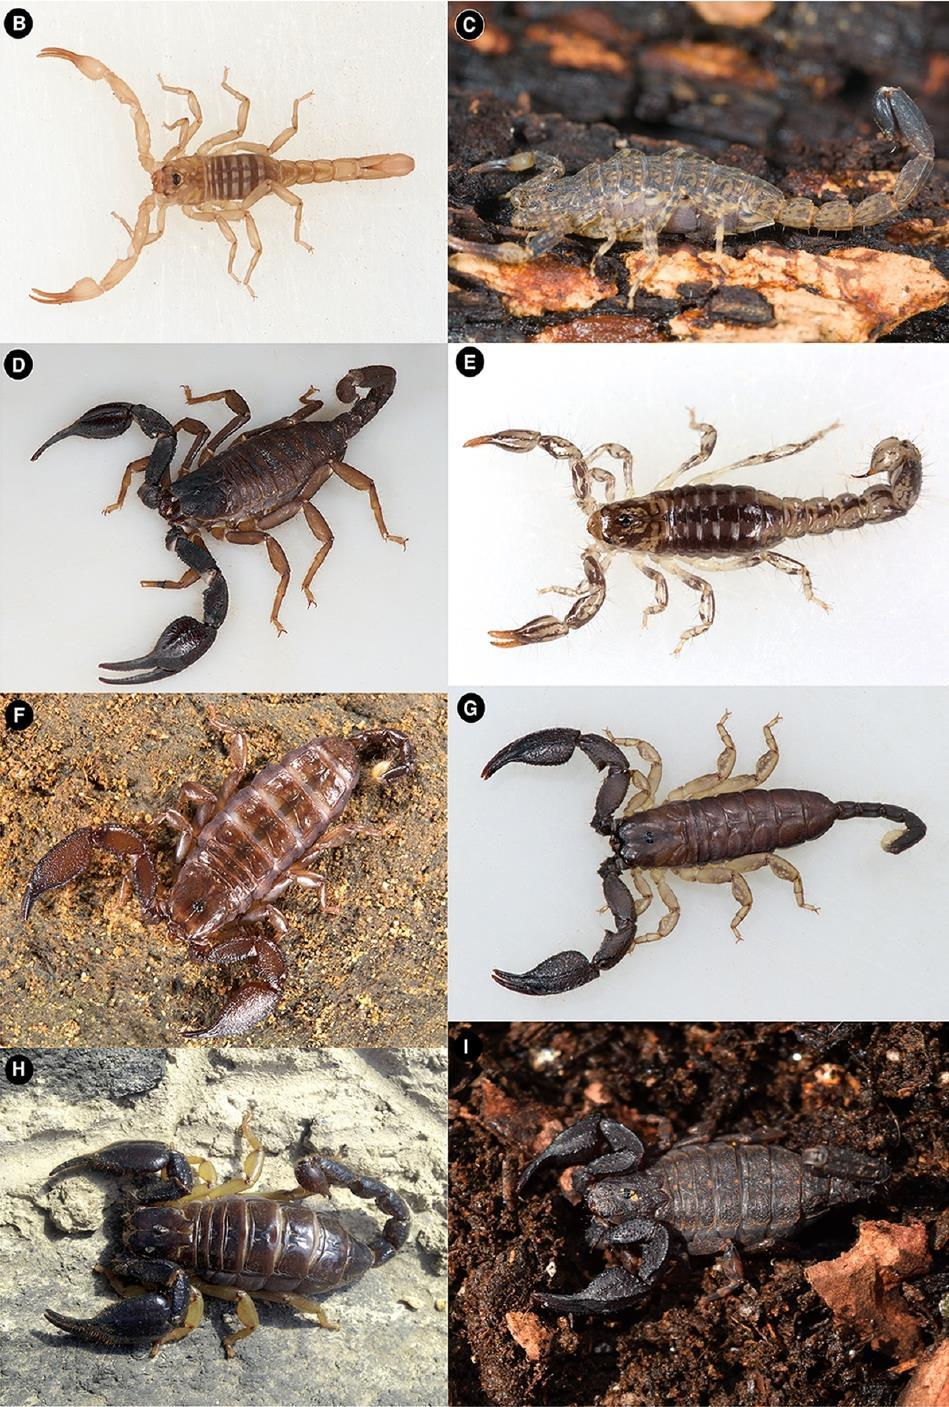 Venom peptides reveal secrets of scorpion evolution